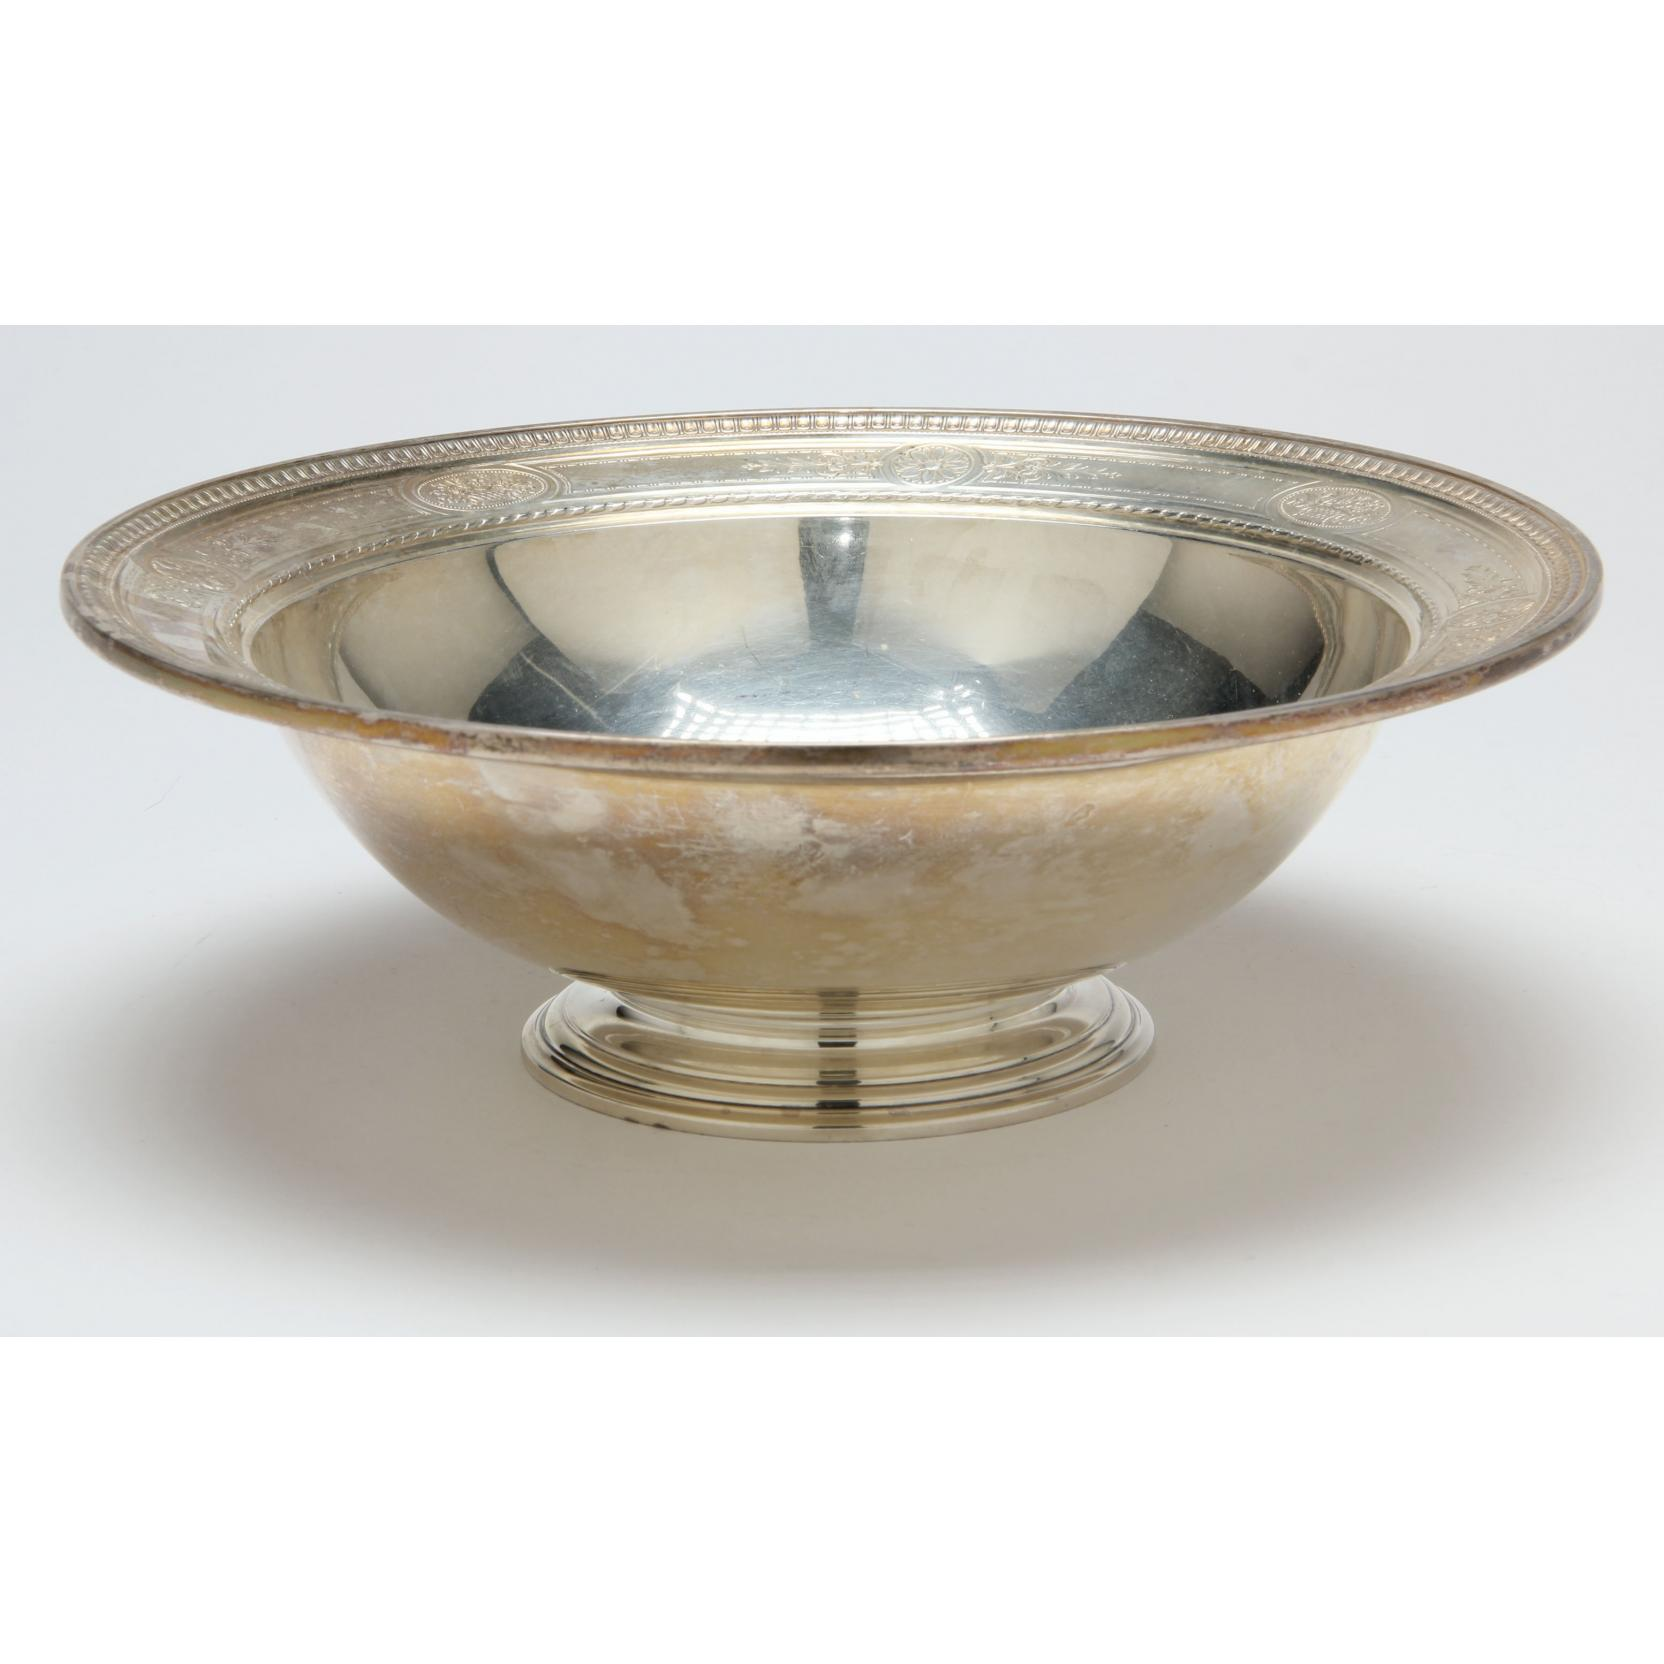 international-sterling-silver-footed-center-bowl